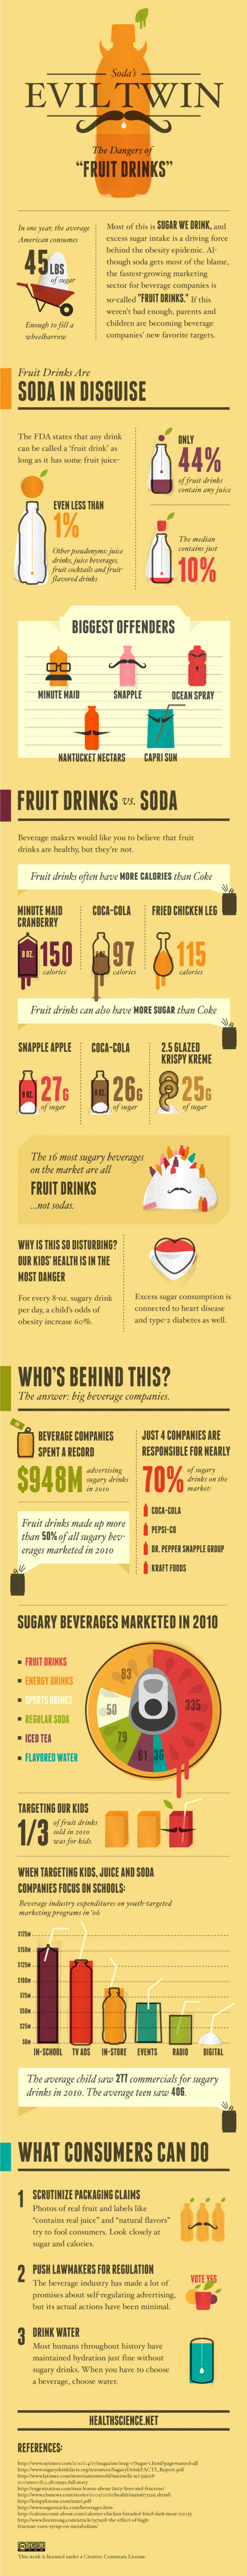 Soda�s Evil Twin � The Dangers of Fruit Drinks